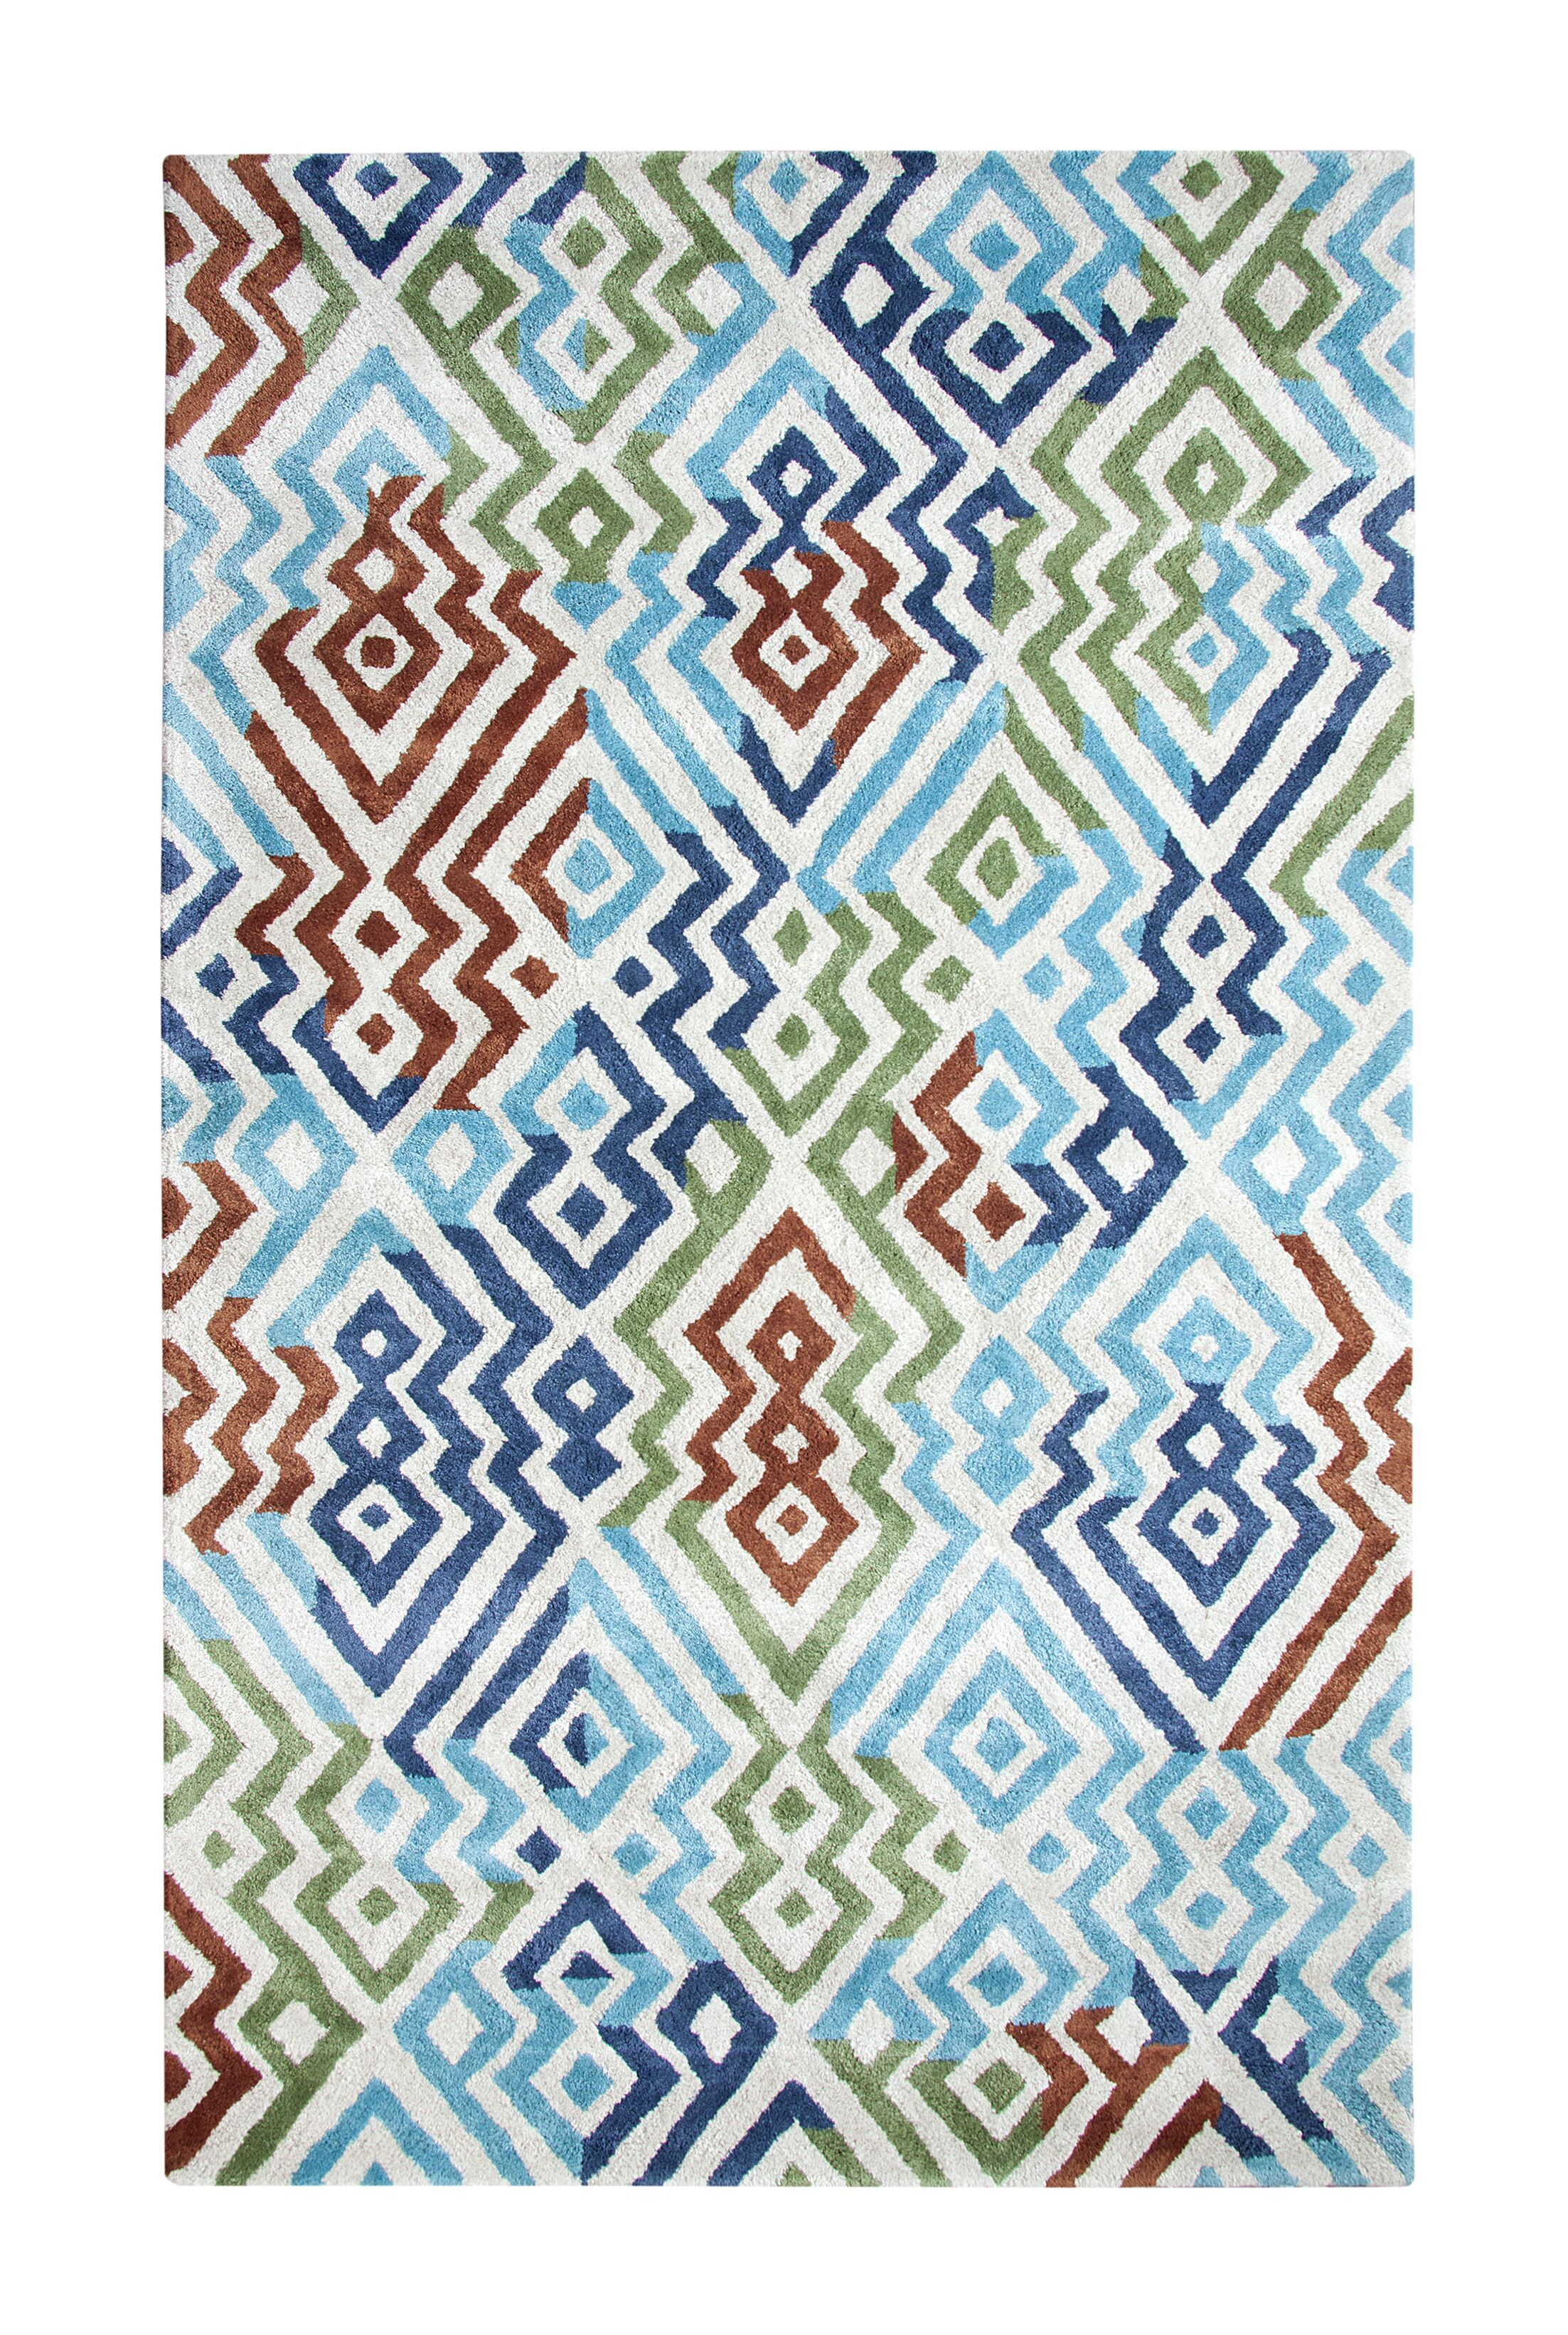 Vogue Turquoise Area Rug Rug Size: Rectangle 6'7